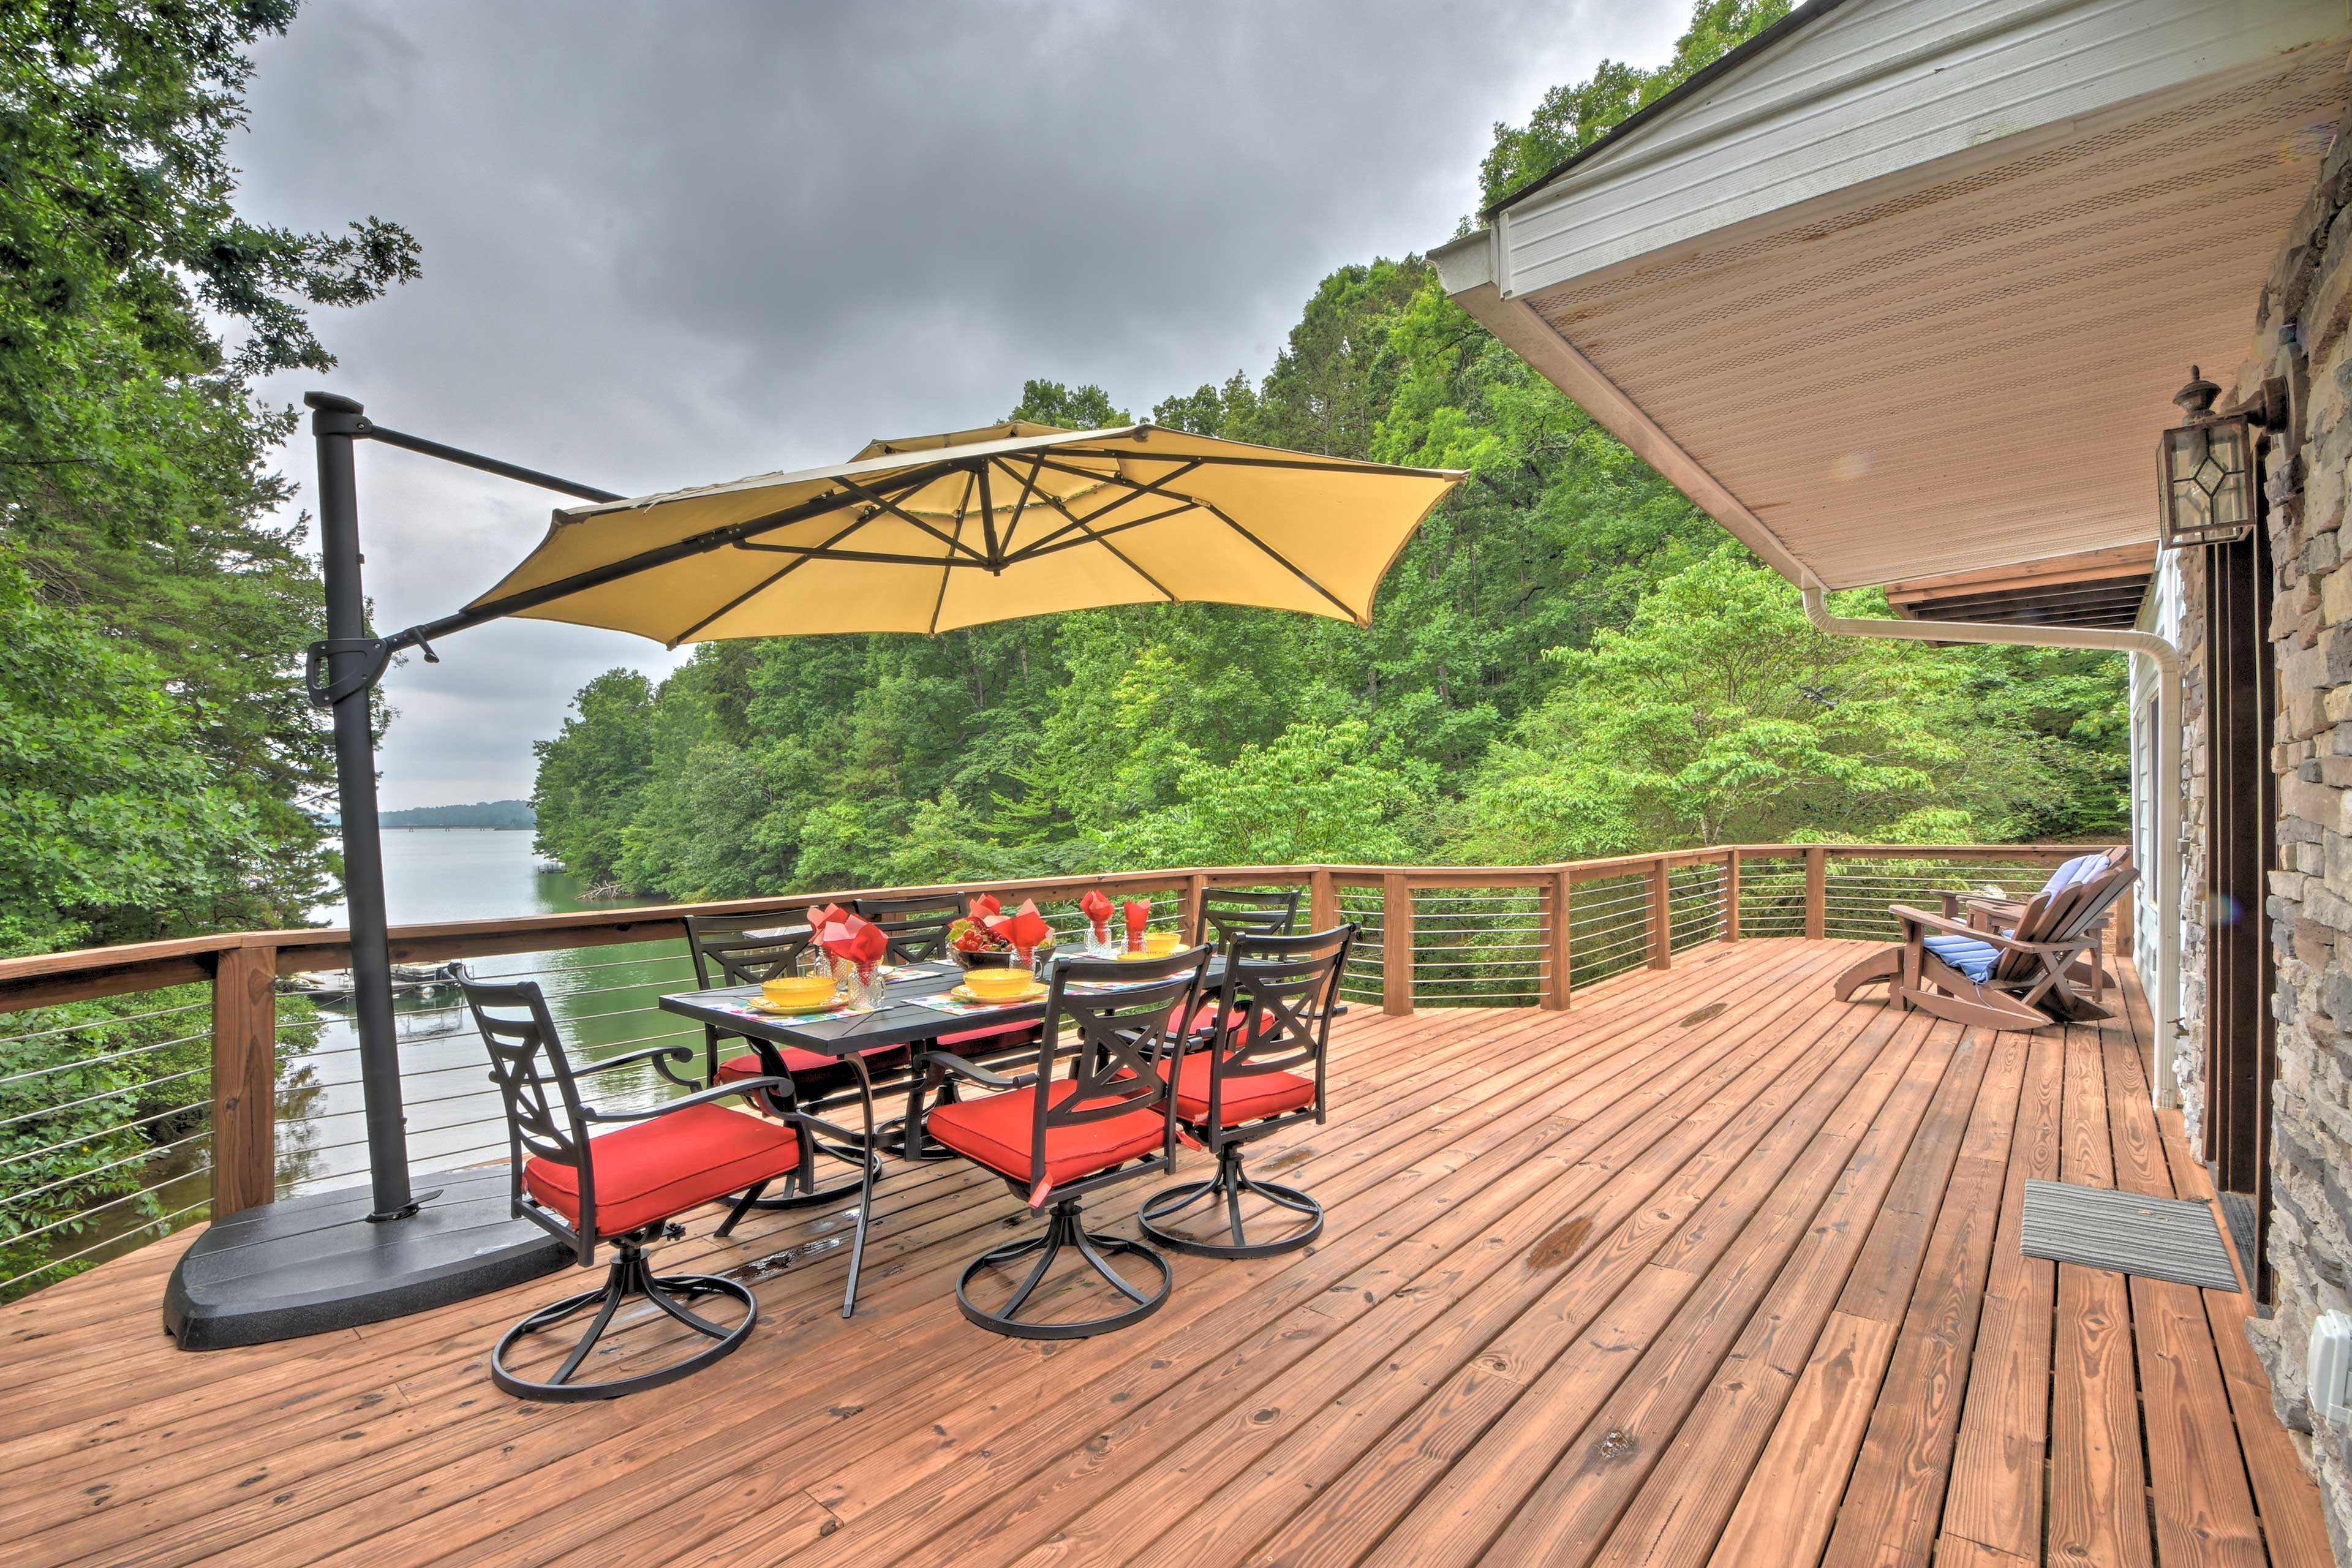 The deck is the perfect place to enjoy a meal al fresco.